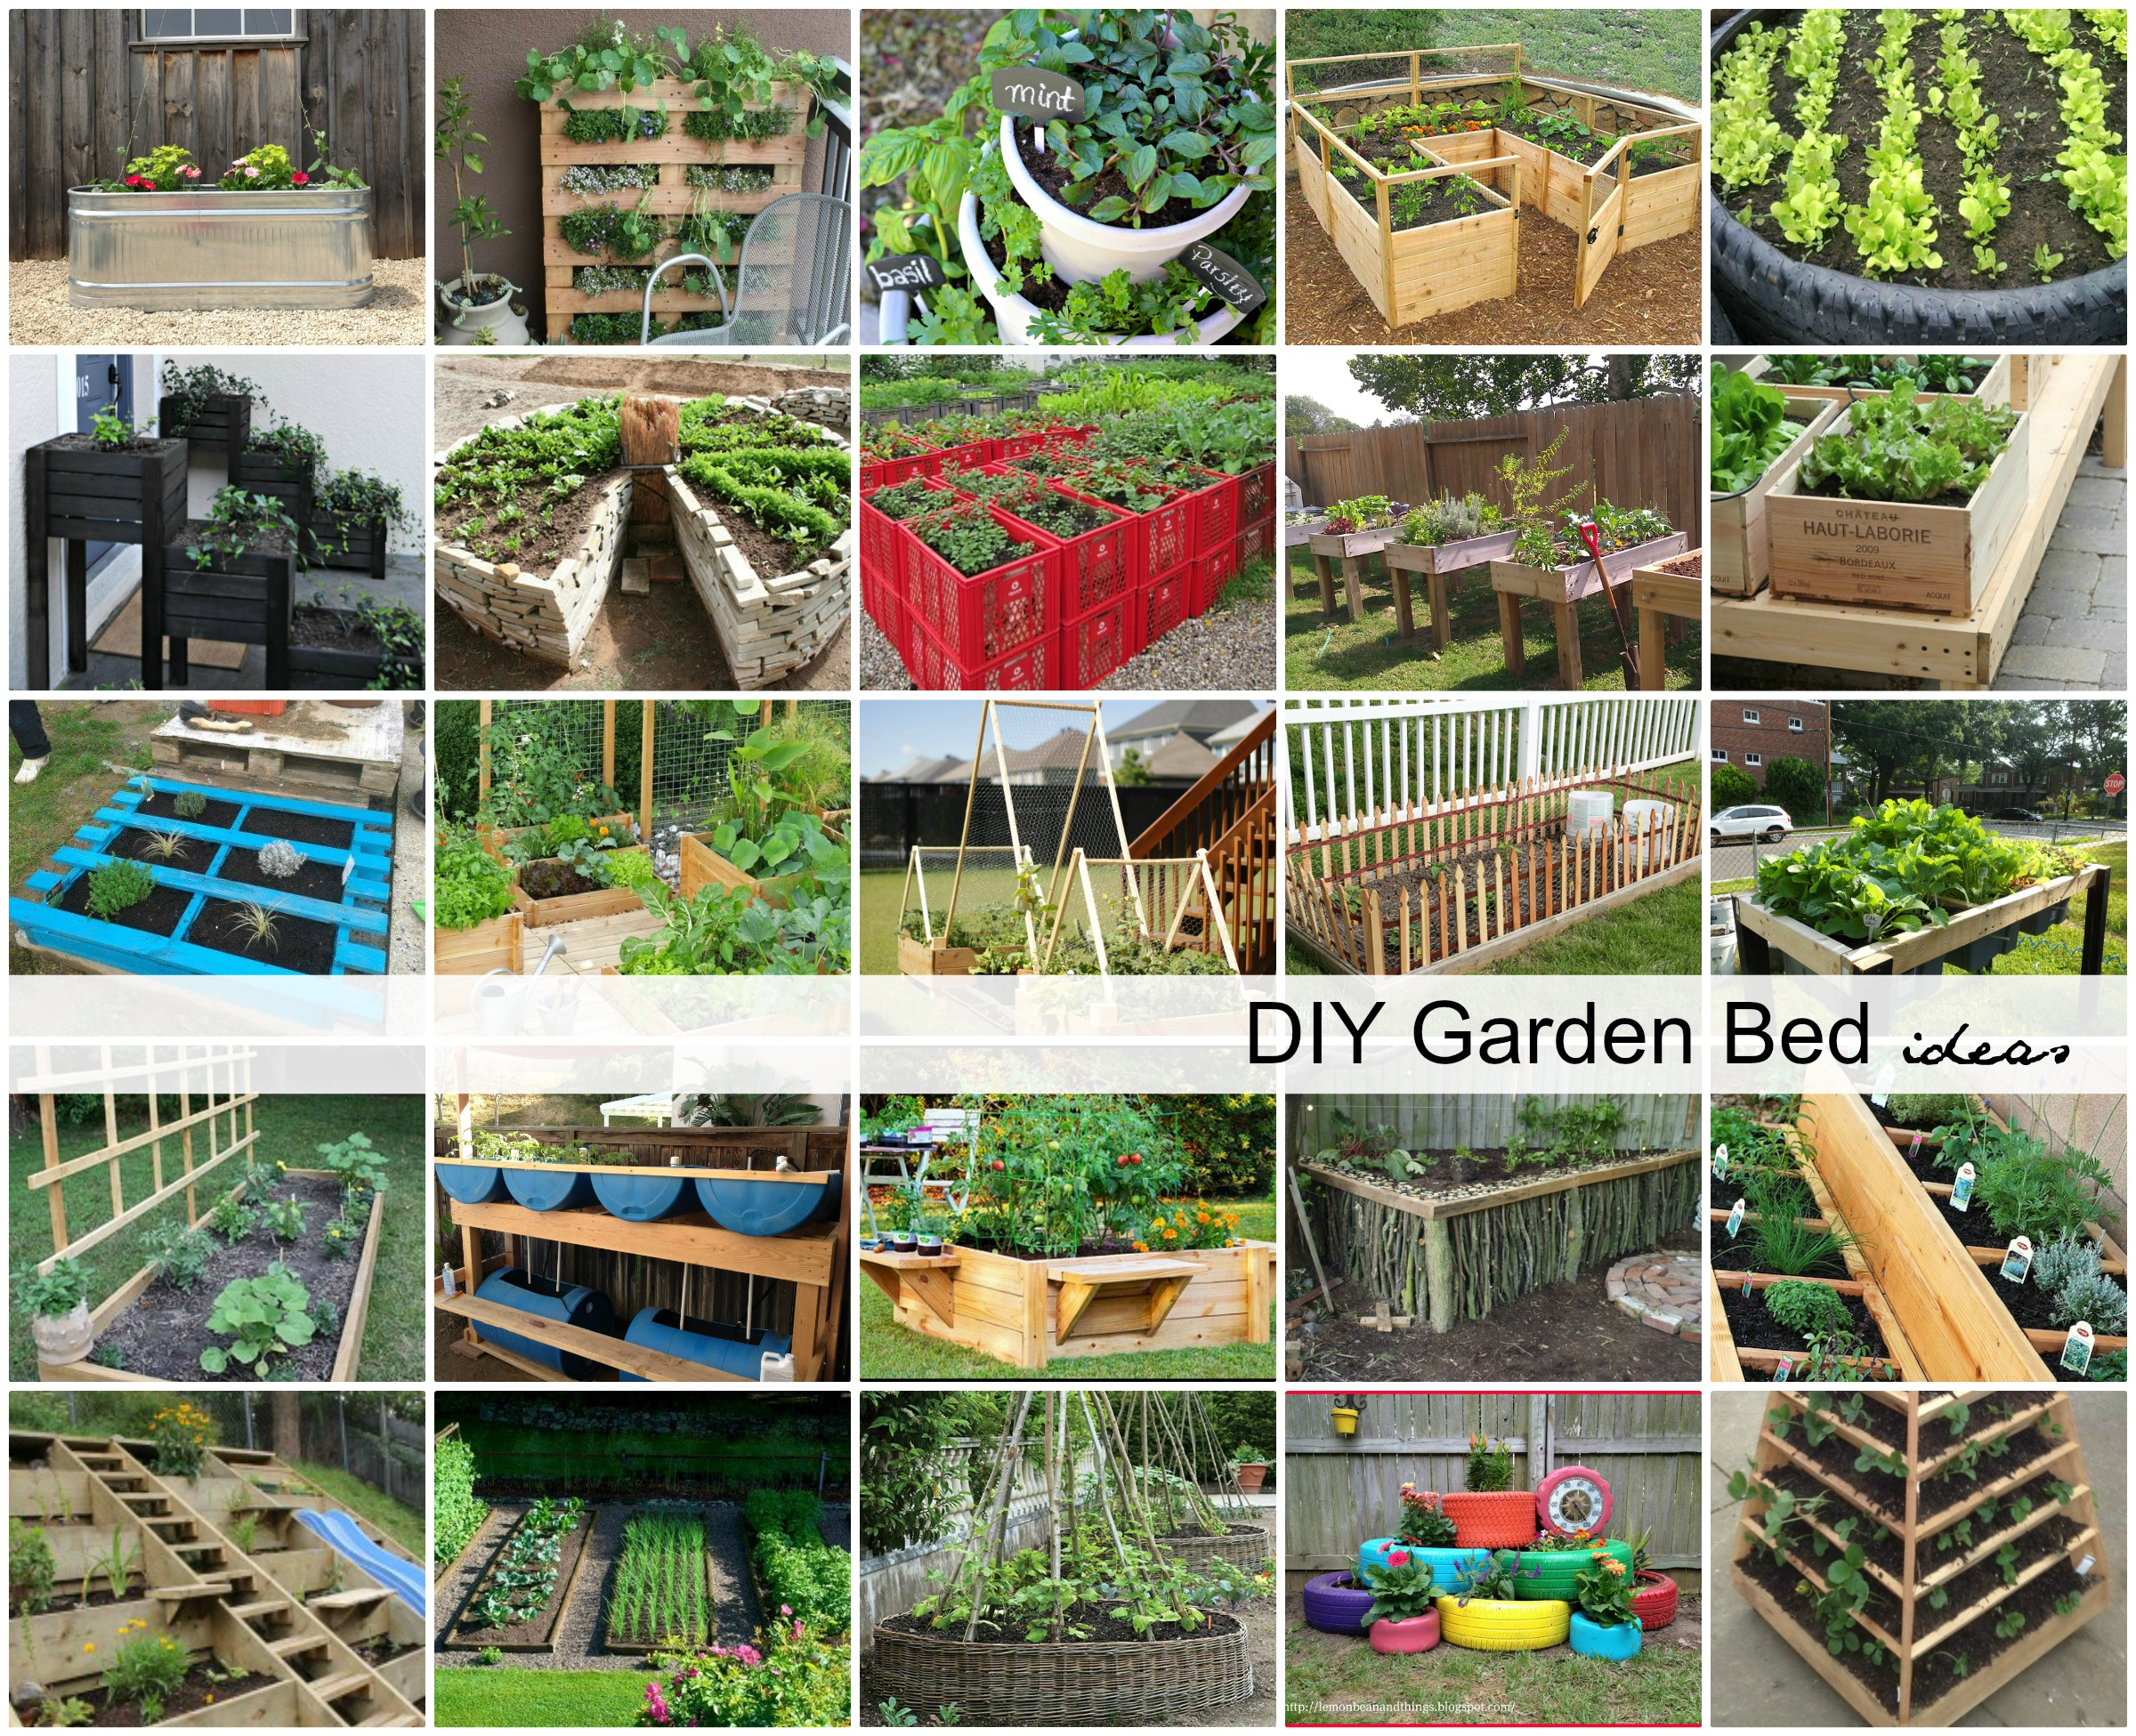 DIY-Garden-Bed-Ideas-1